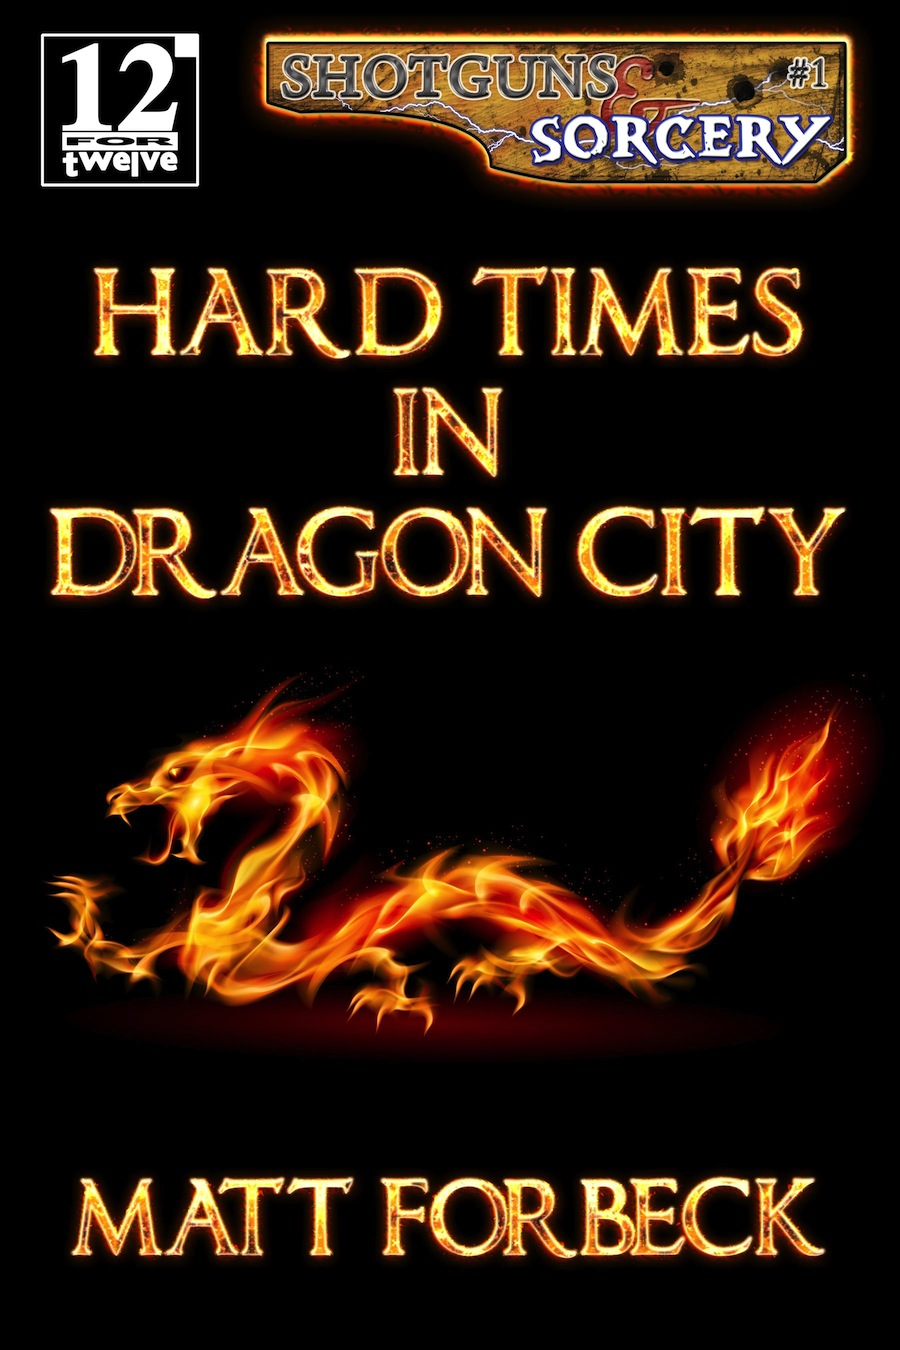 Hard Times in Dragon City